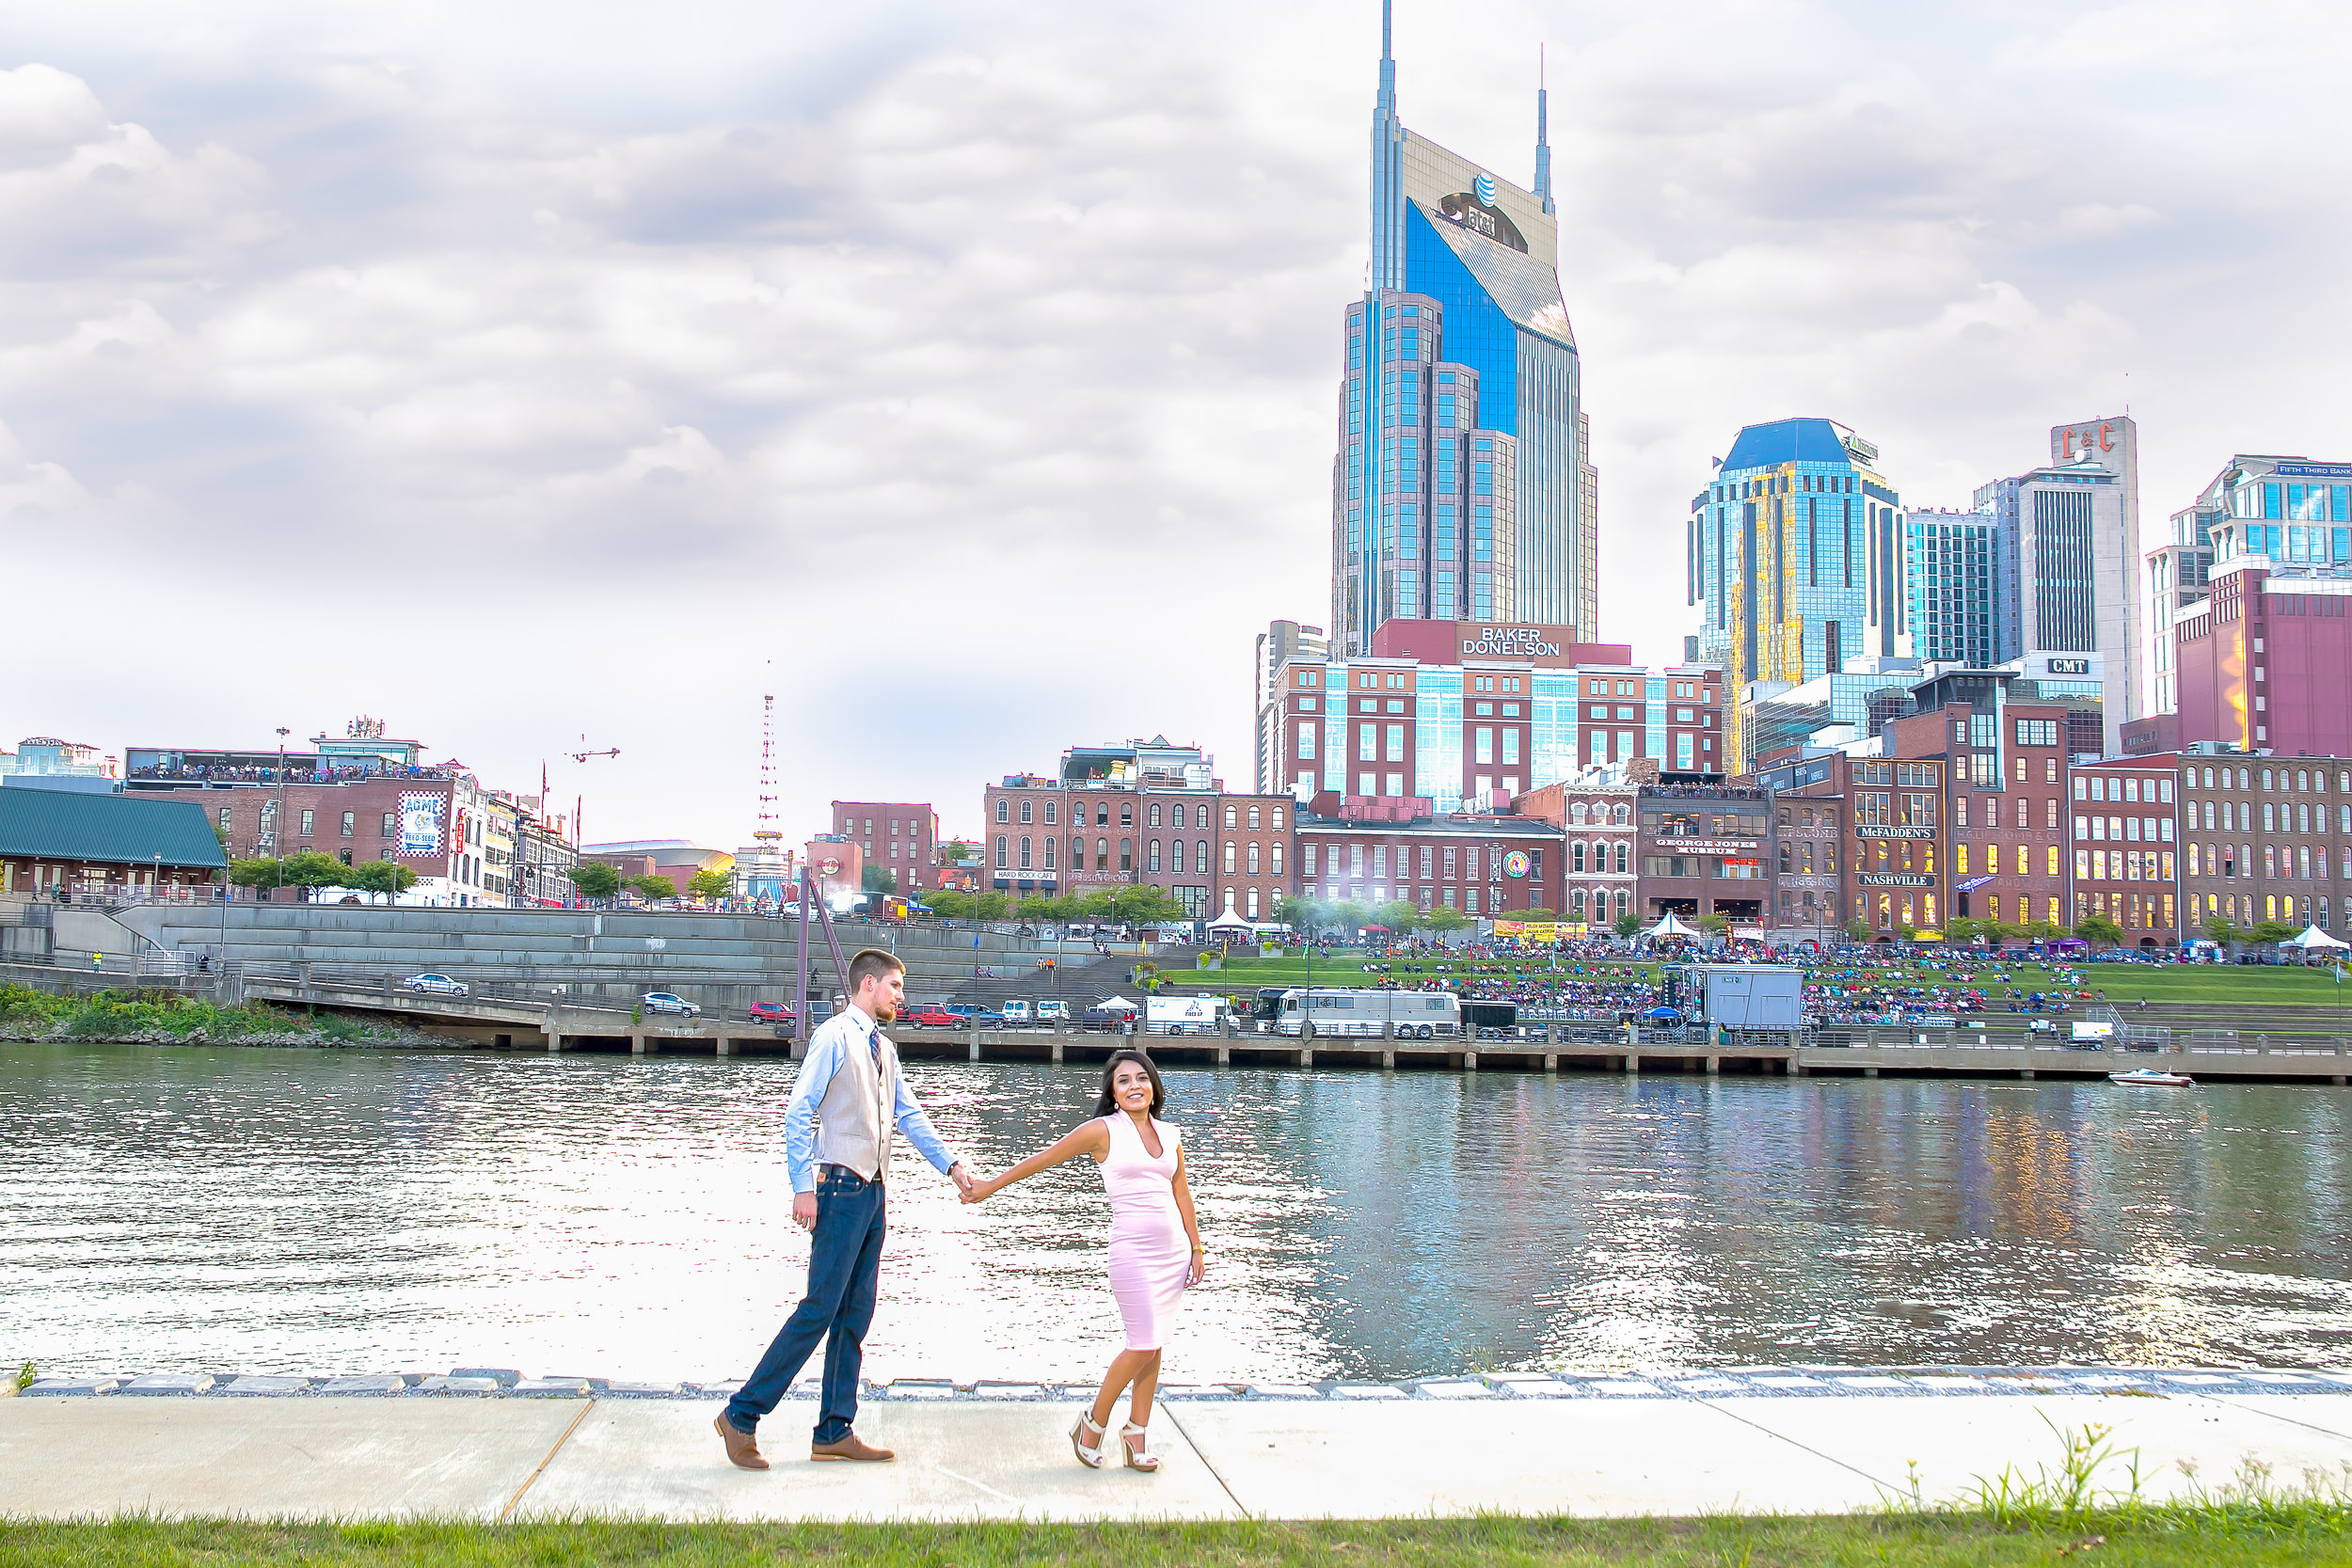 Sonia and Joseph, enjoying a beautiful Nashville skyline.